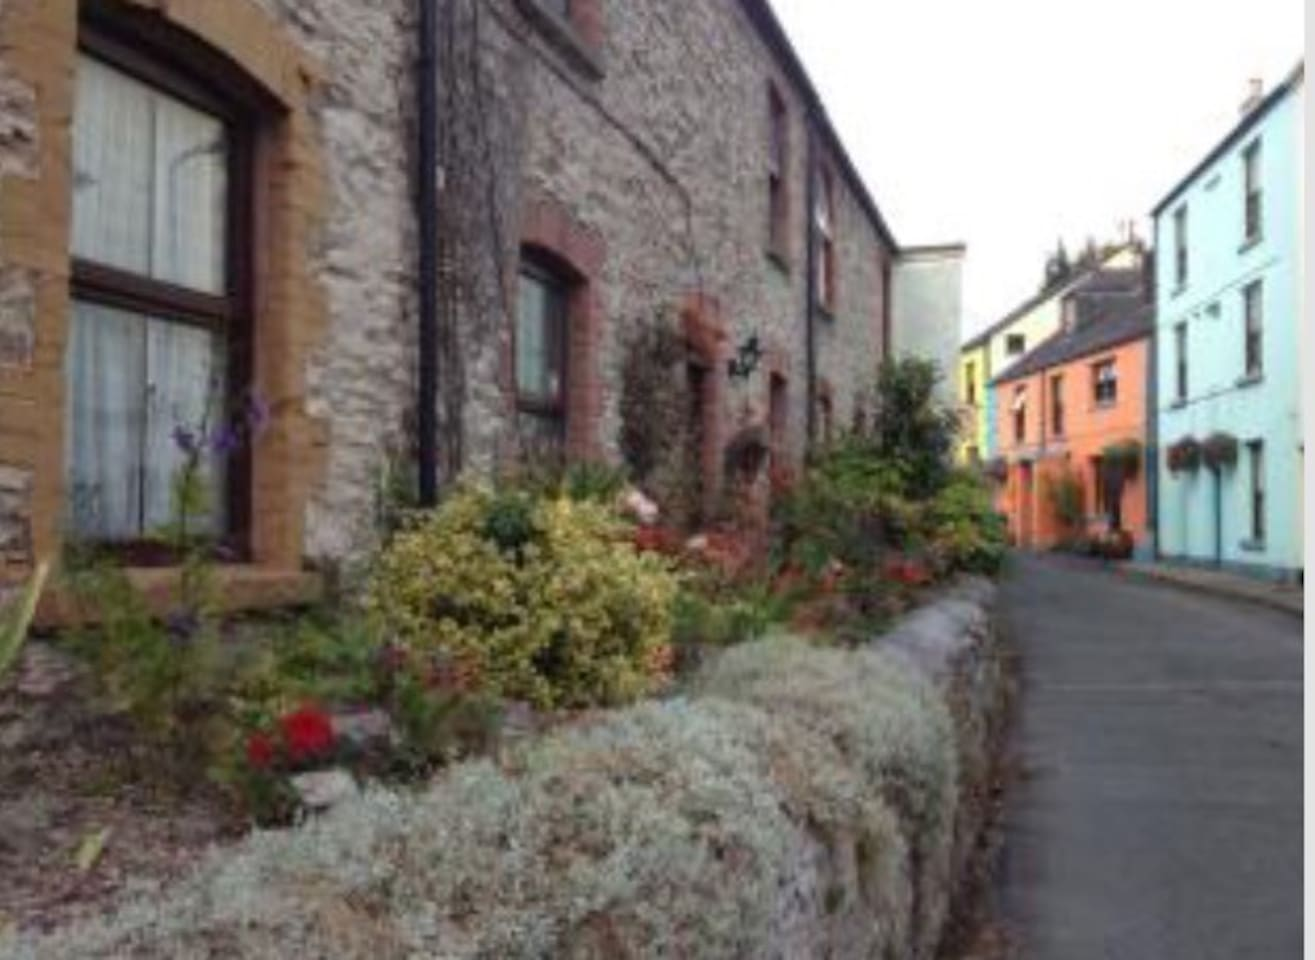 A view down the village - a mixture of old and new